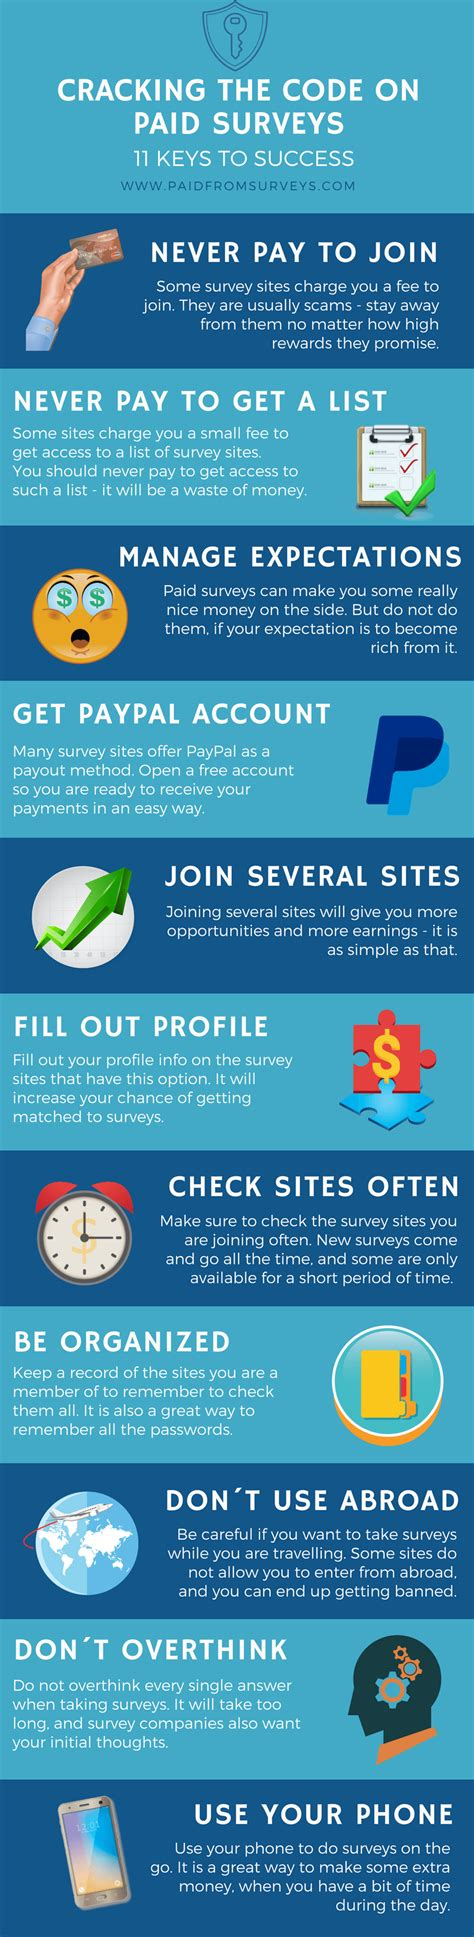 Paid Surveys - cracking the code on paid surveys 11 keys to success